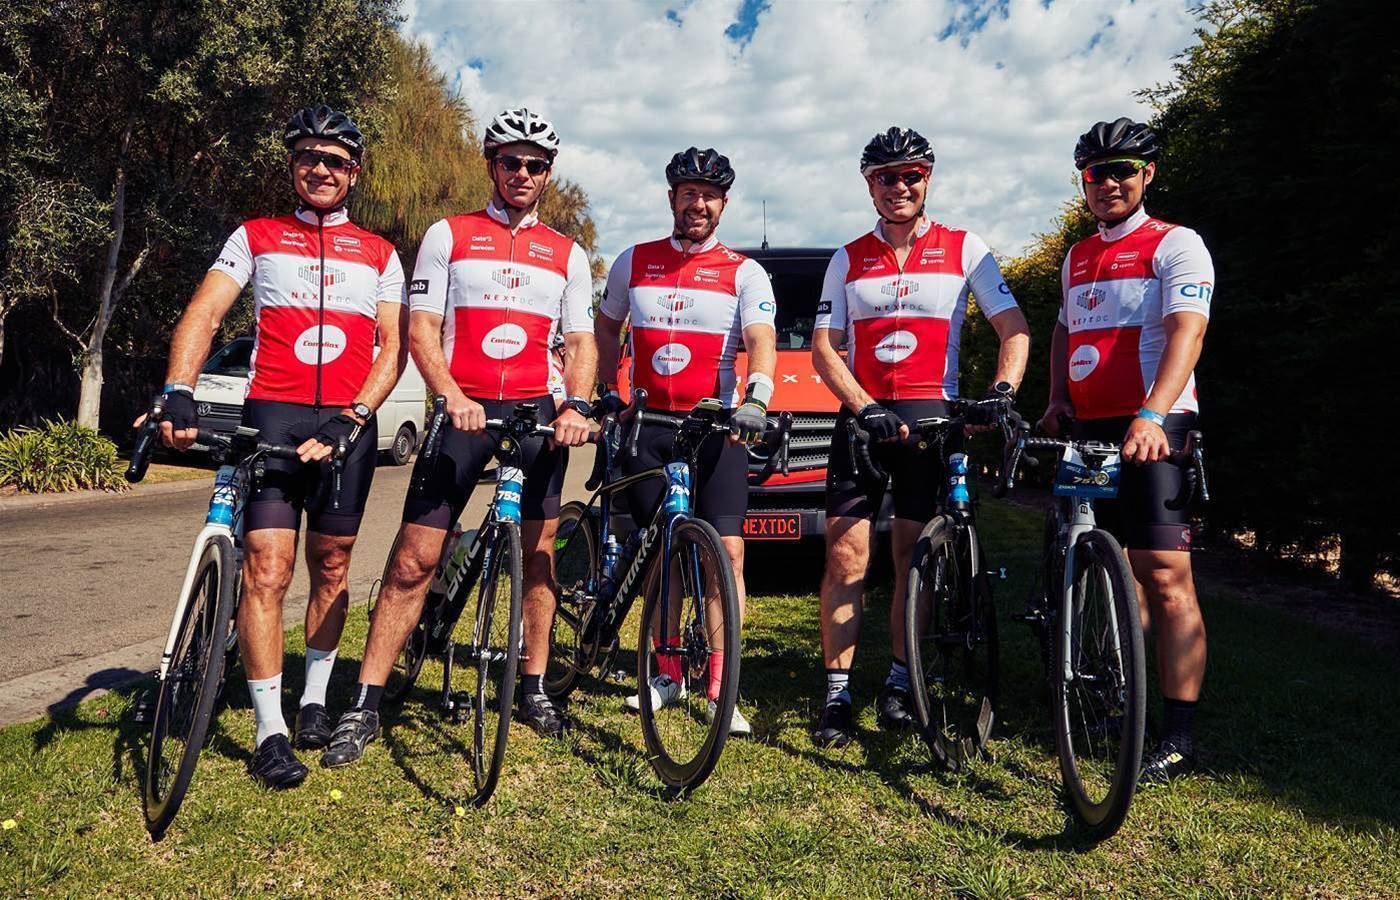 Channel partners join NextDC for charity bike ride